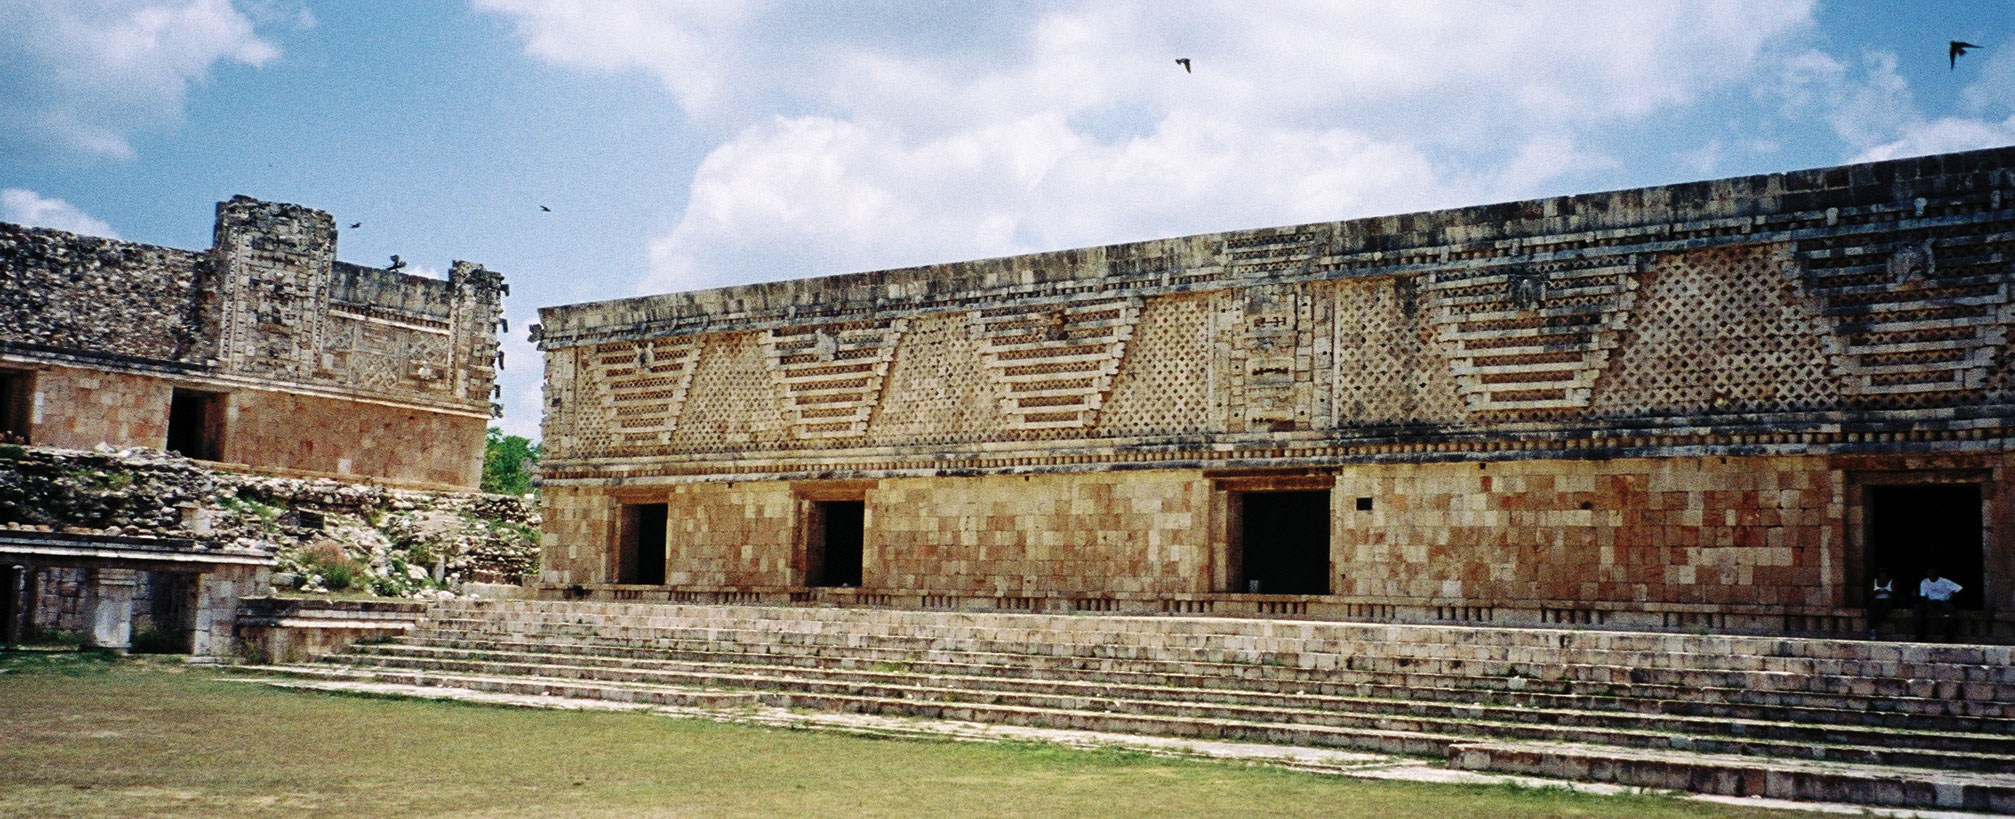 Yucatan, Uxmal, Archeological zone, Nunnery Quadrangle, East Building - Photo by German Murillo-Echavarria 0405